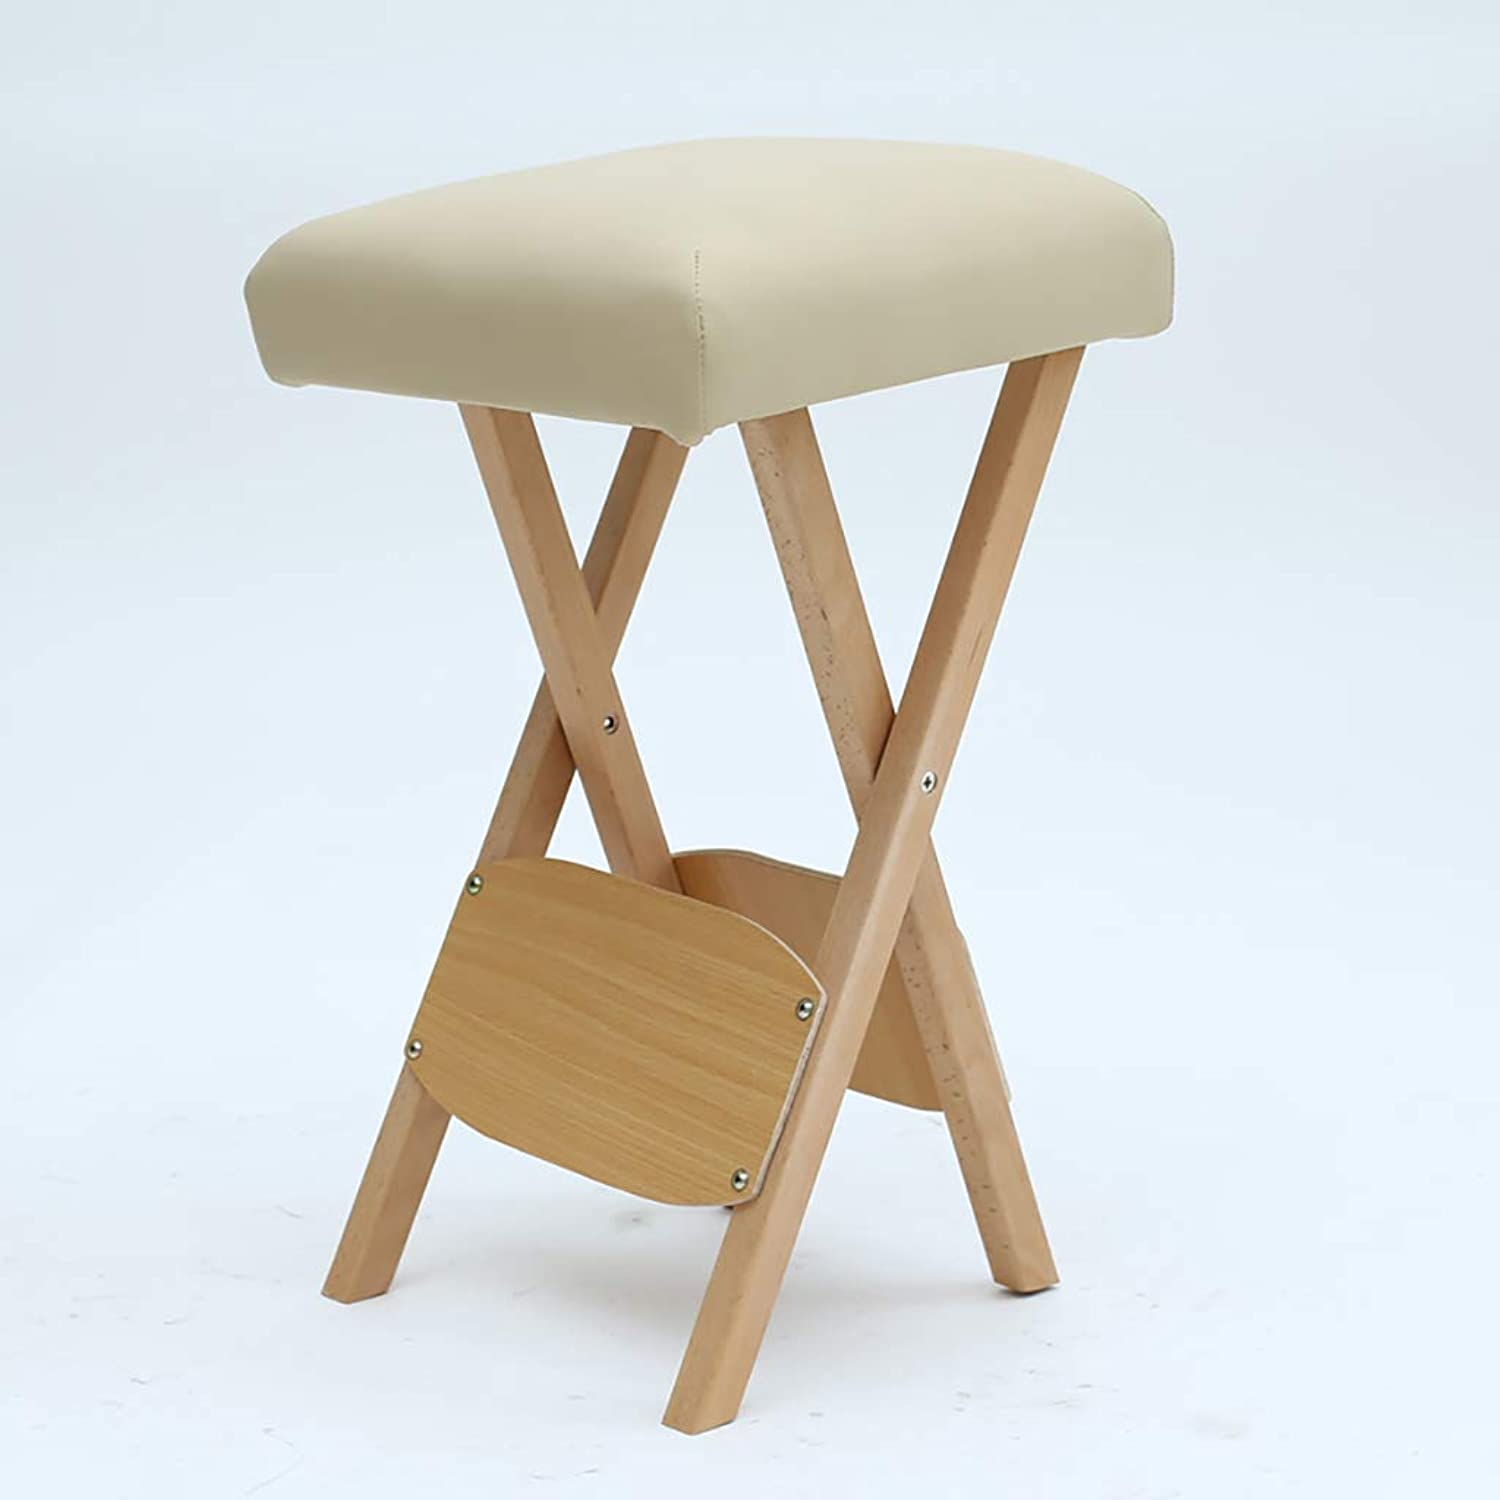 Folding Stool Beauty Technician Stool Massage Stool Square Stool Portable Stool Sponge Thickening Stool (color   B)